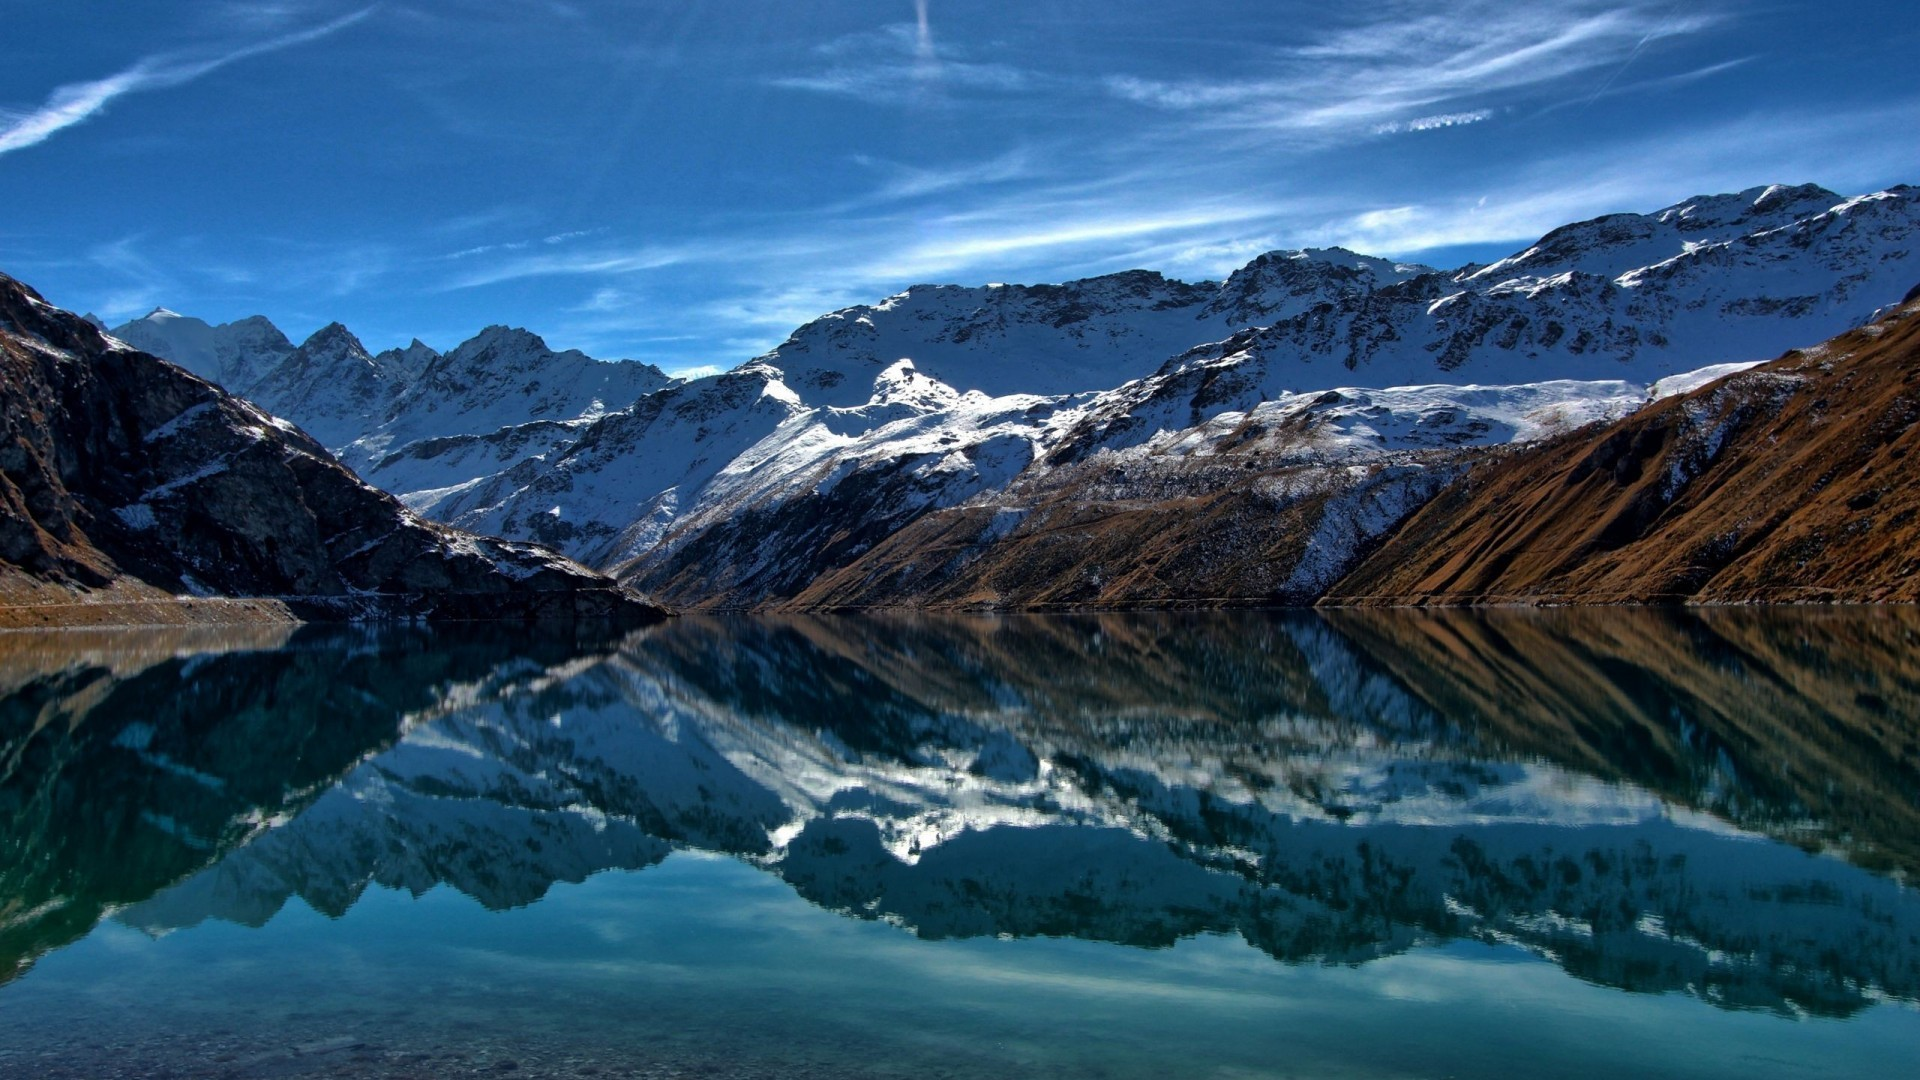 1920x1080 mountains mountain lac blue nature hd wallpapers iphone 5 4k high  definition windows 10 mac apple colourful images backgrounds download  wallpaper free ...